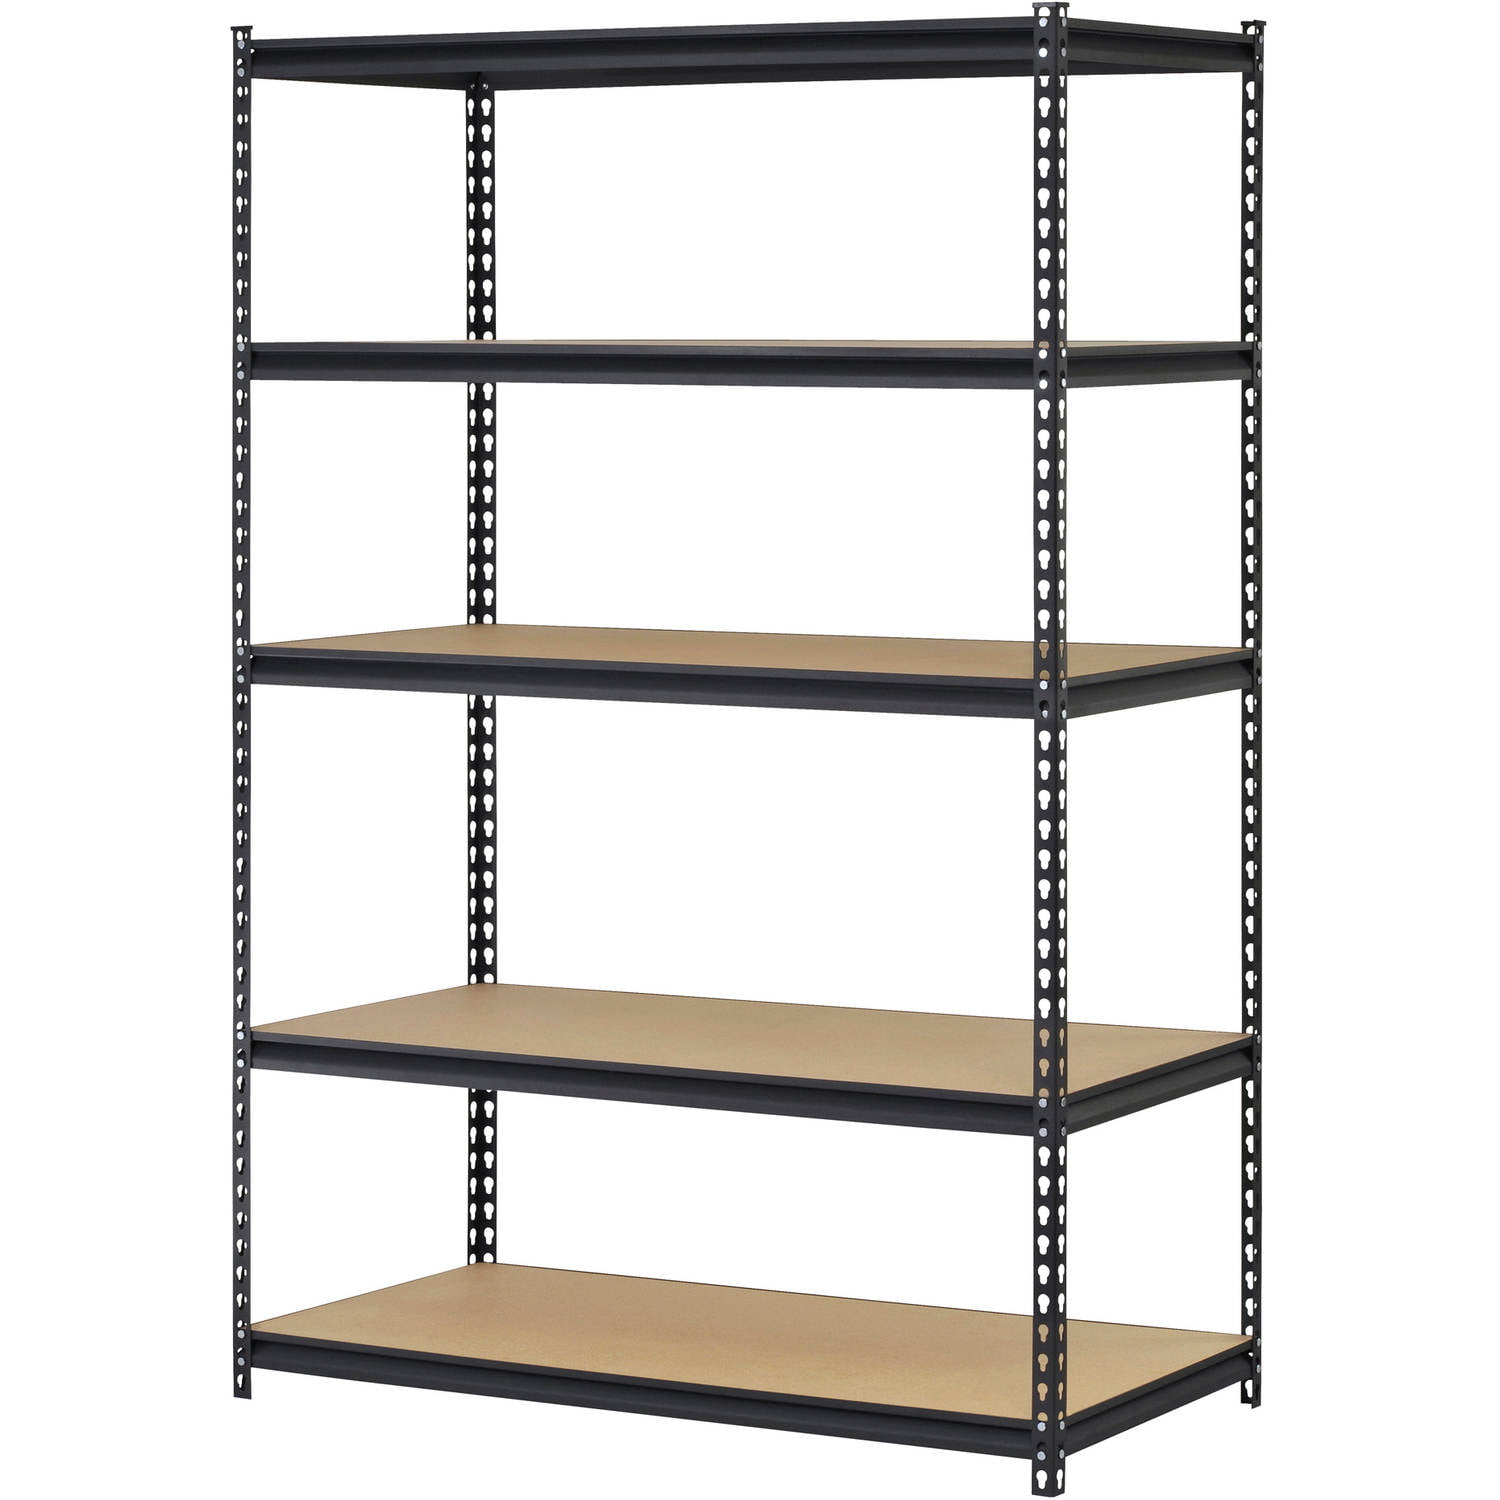 edsal 48w x 18d x 72h ultra rack walmartcom - Heavy Duty Storage Shelves